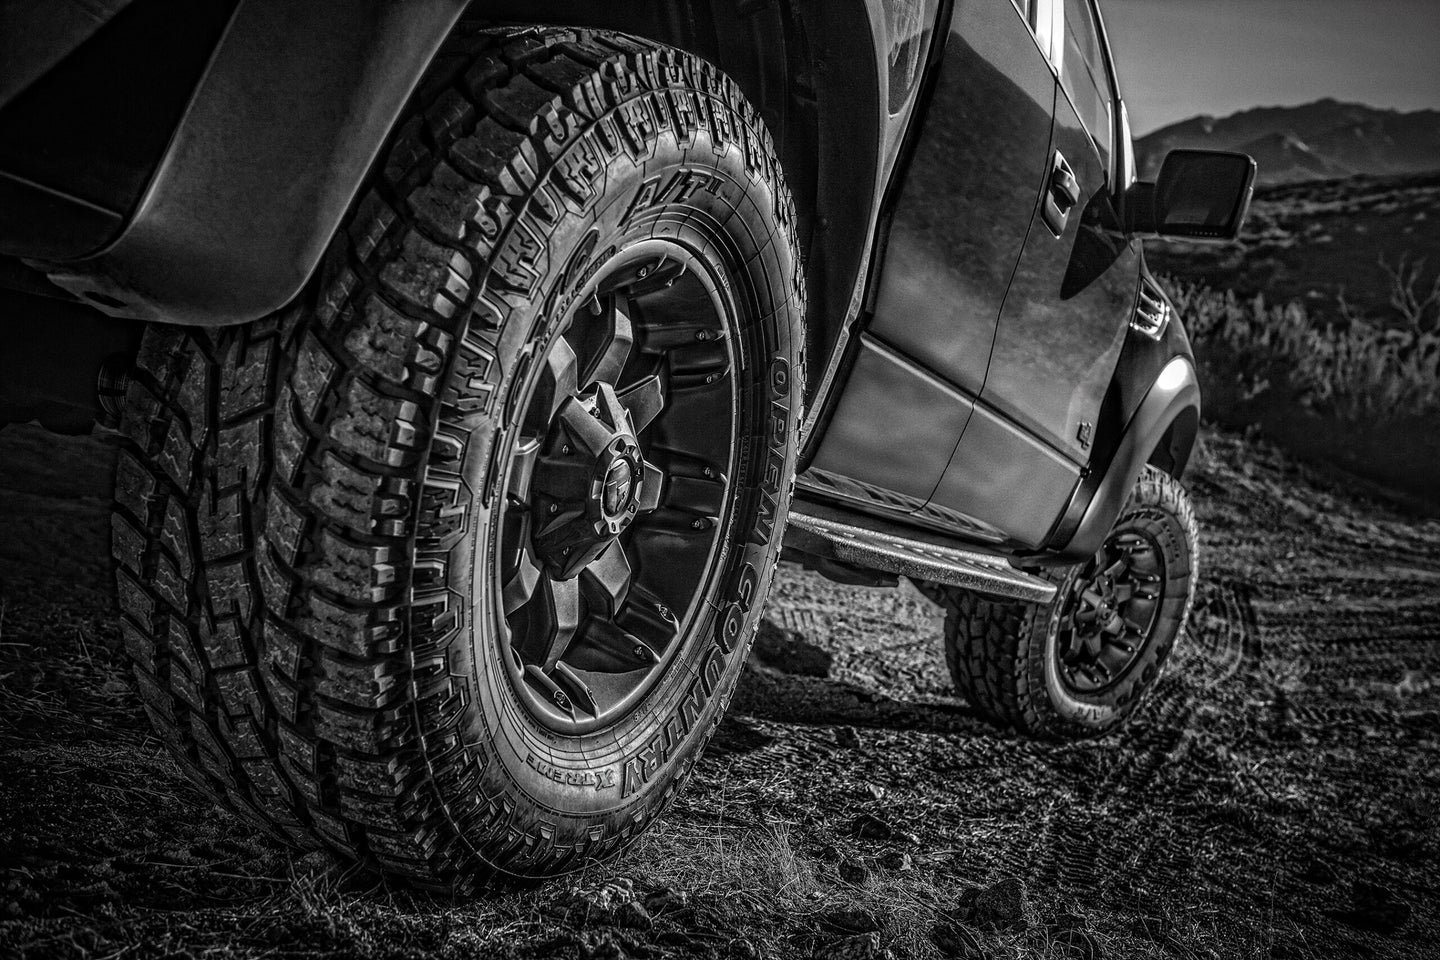 Aftermarket truck tires allow you to access locations standard tires will not.